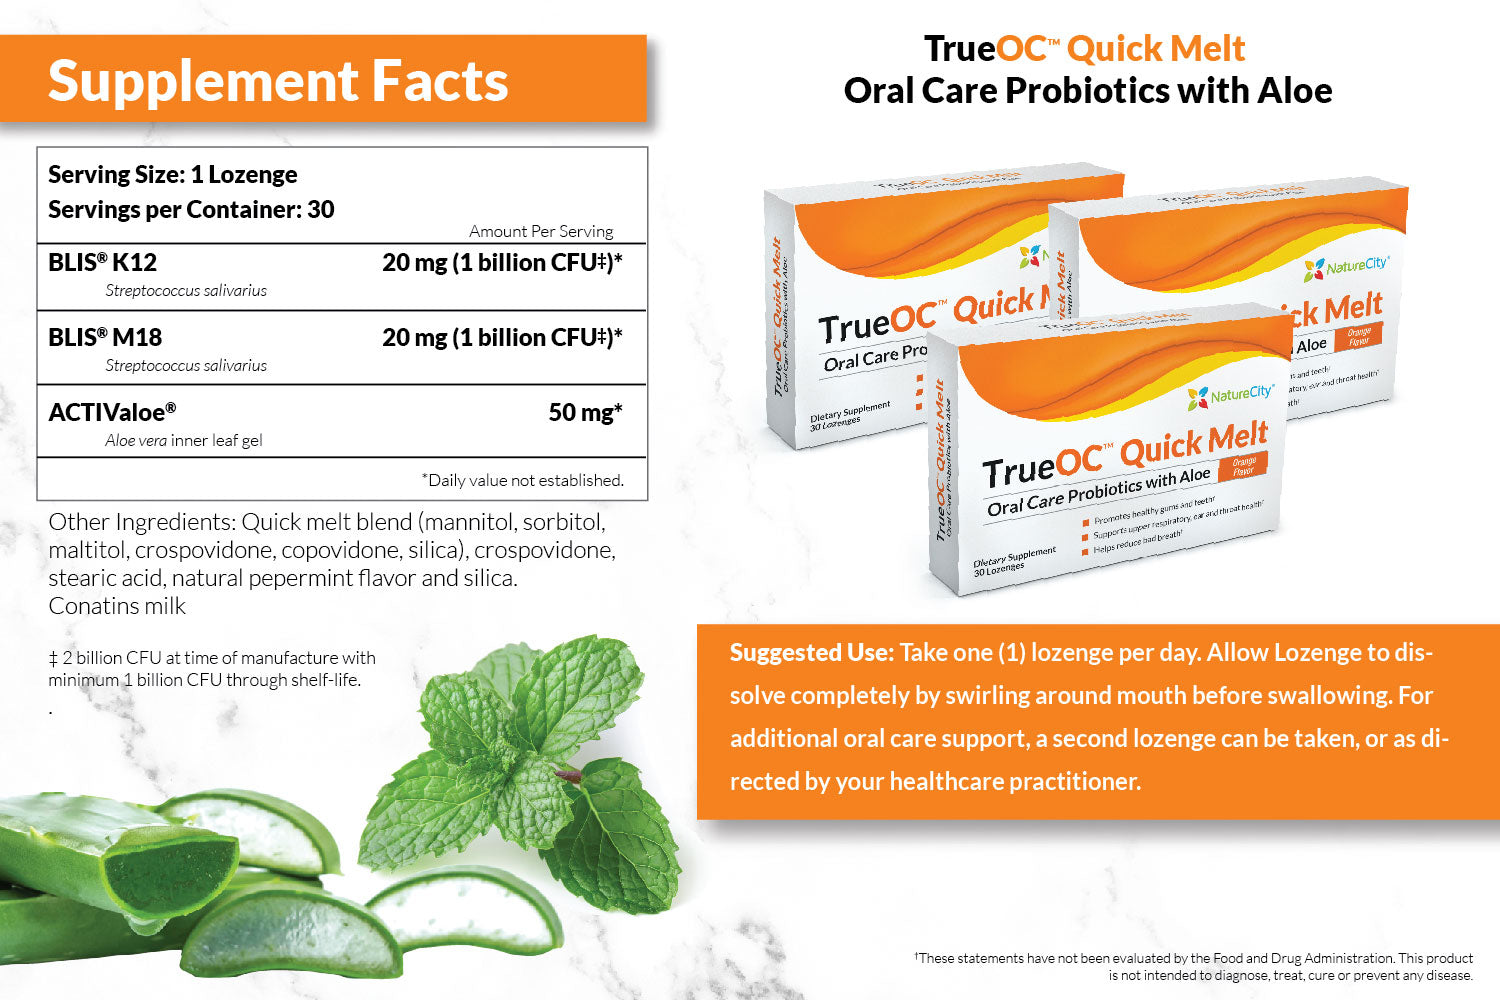 TrueOC Oral Probiotic Supplement Facts and Directions